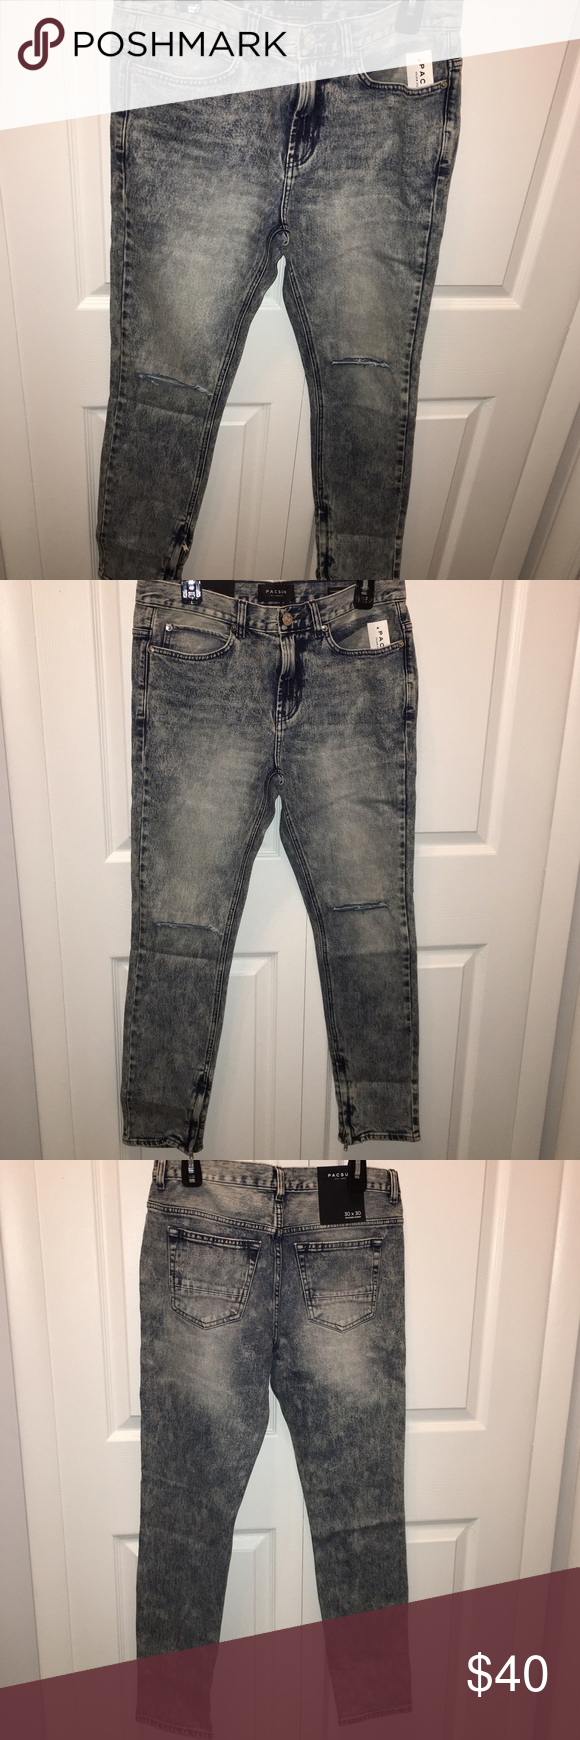 "Stacked skinny distressed zip bottom jeans PacSun PacSun - stacked skinny - 30x30 (2 available). Zippers at bottom and slits on knee (see photos). Medium denim acid wash color. ""Brite indigo"" color on tag. Original price includes tax. Any questions - feel free to leave a comment below. PacSun Jeans Skinny"